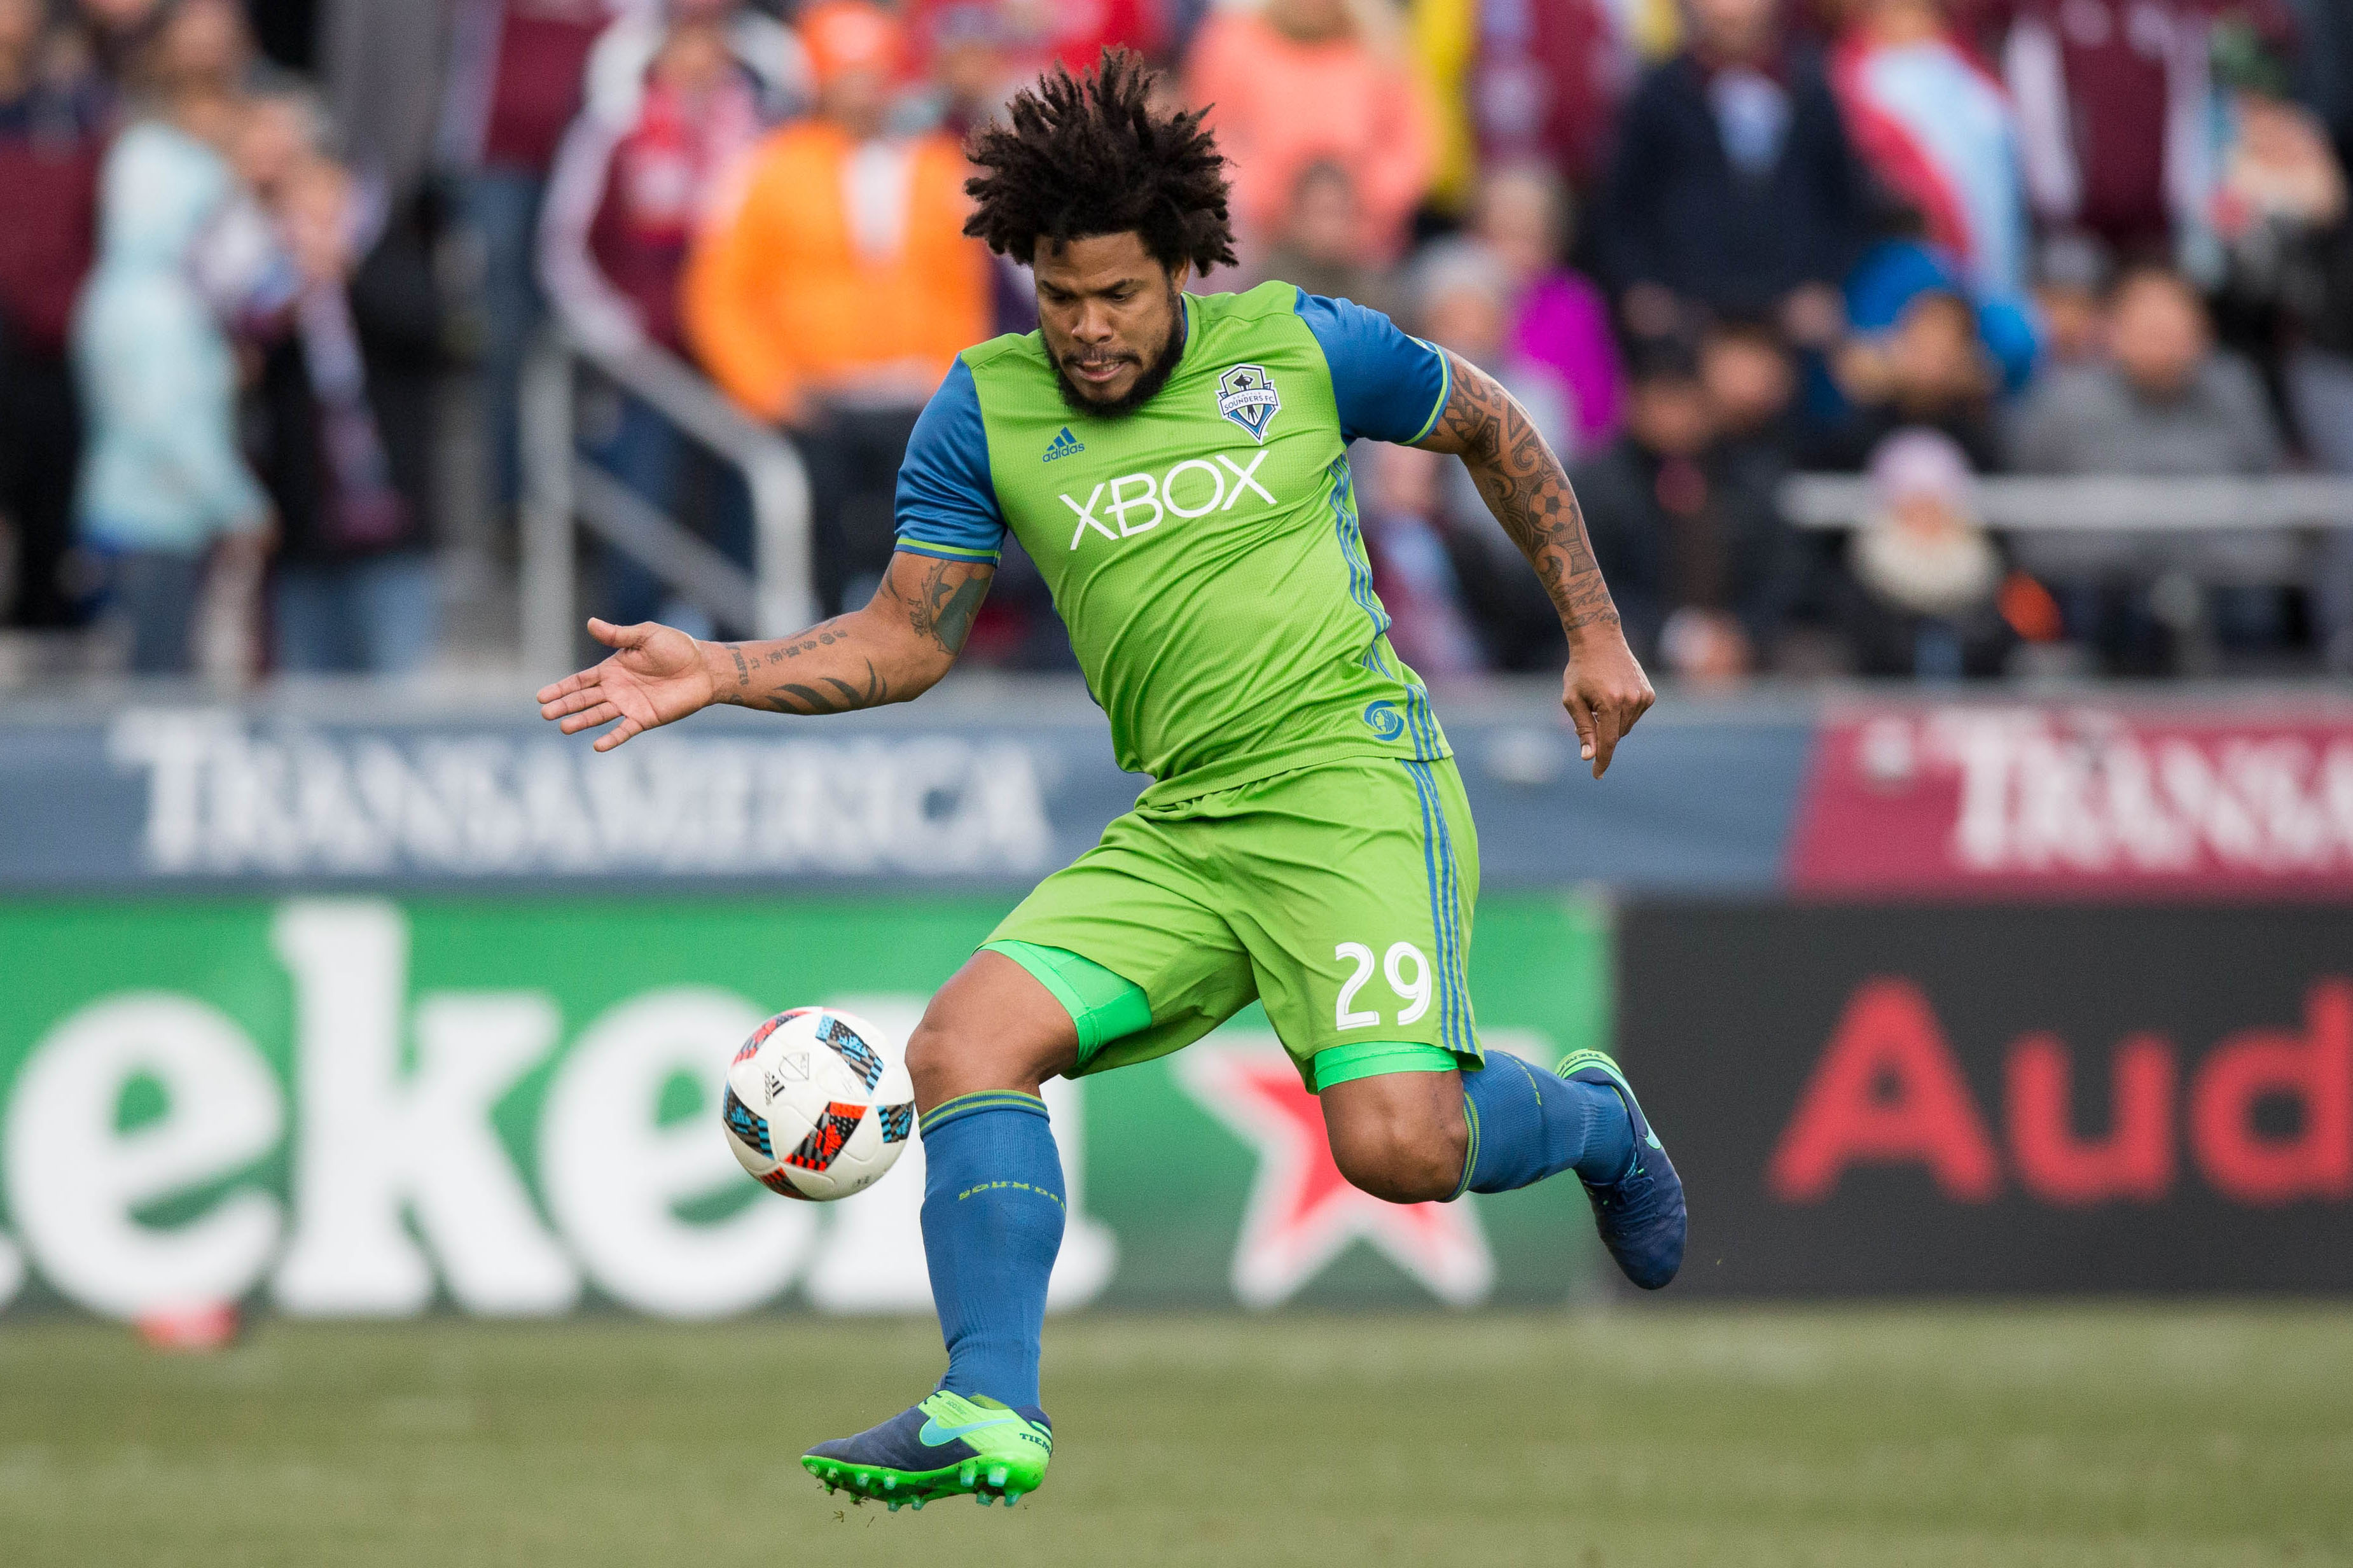 9709624-mls-western-conference-championship-seattle-sounders-at-colorado-rapids